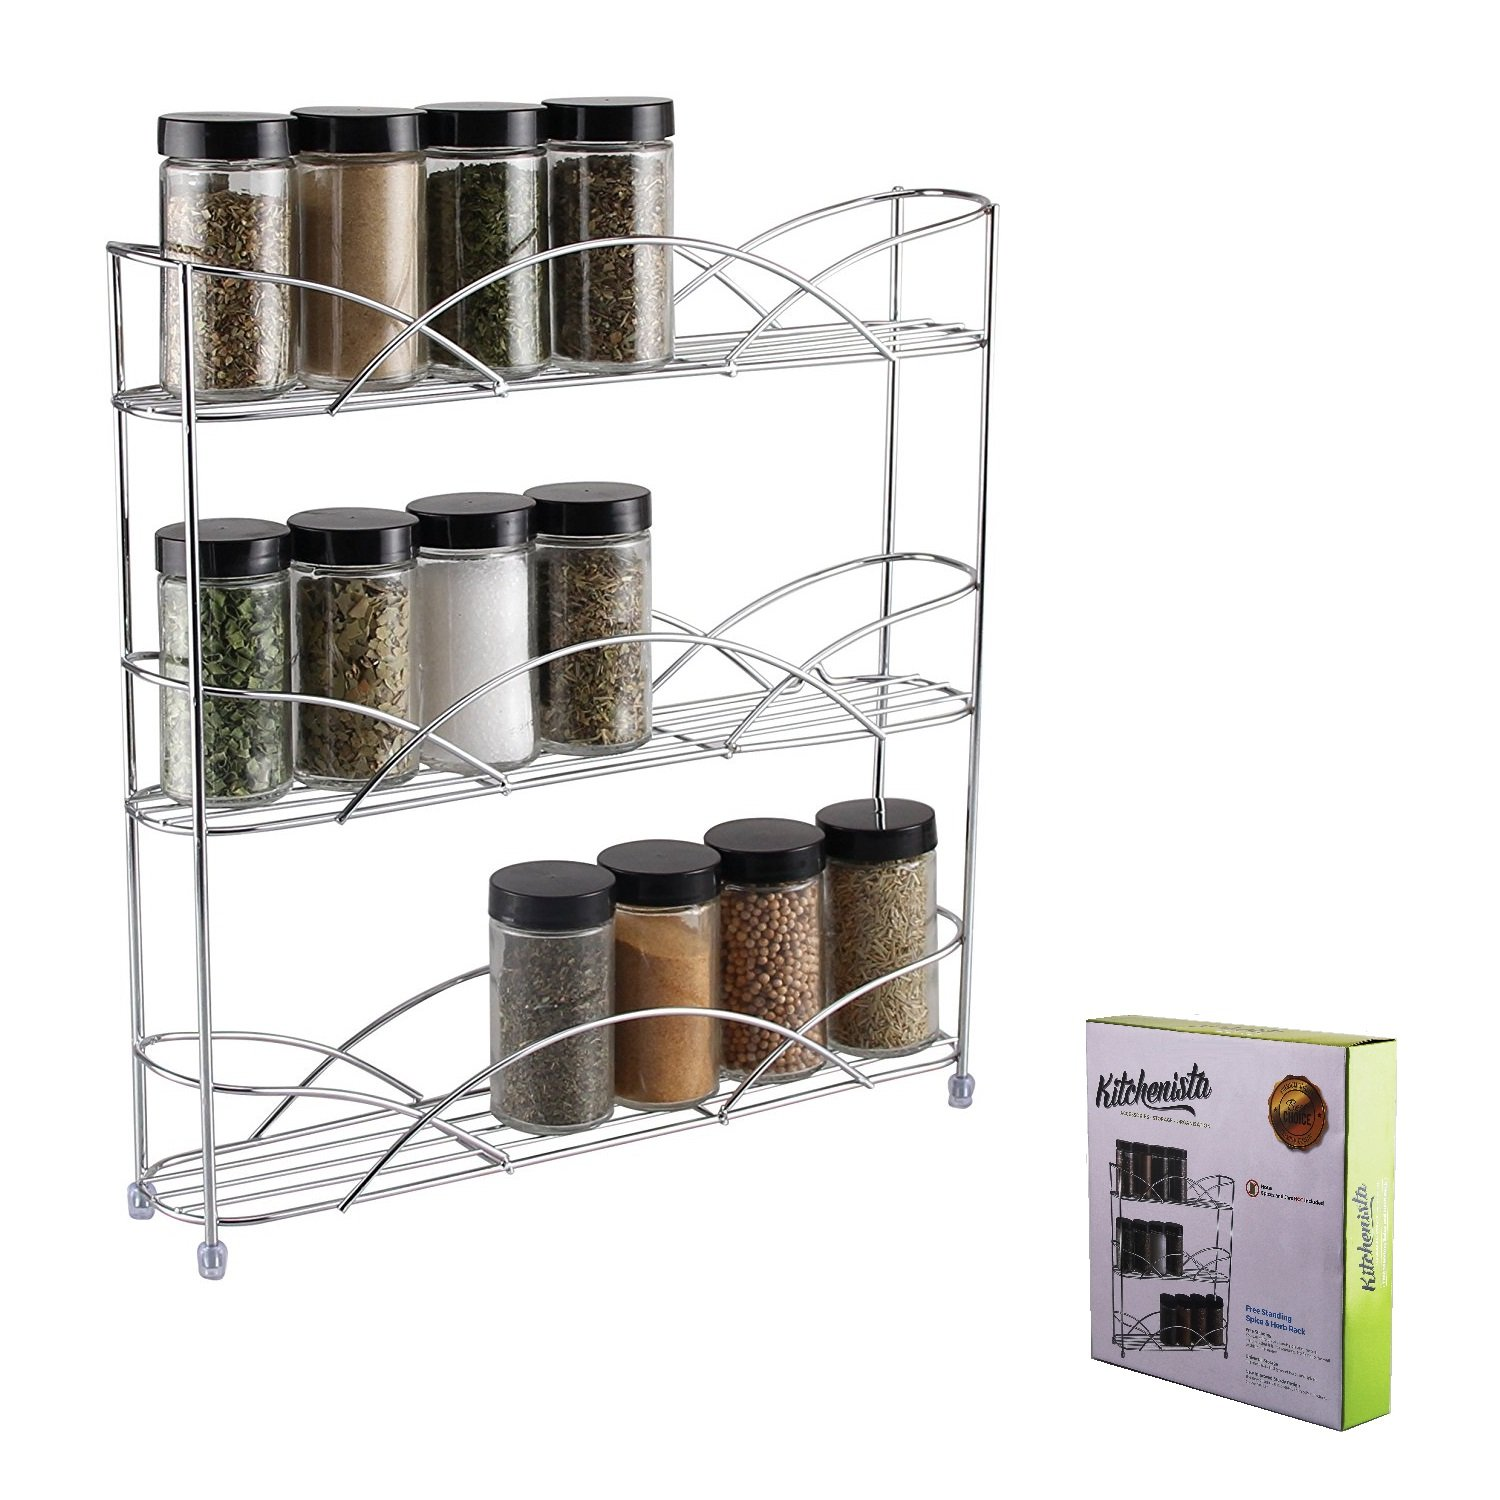 cabinets tips hgtv remodel ideas options rack spice racks pictures kitchen for